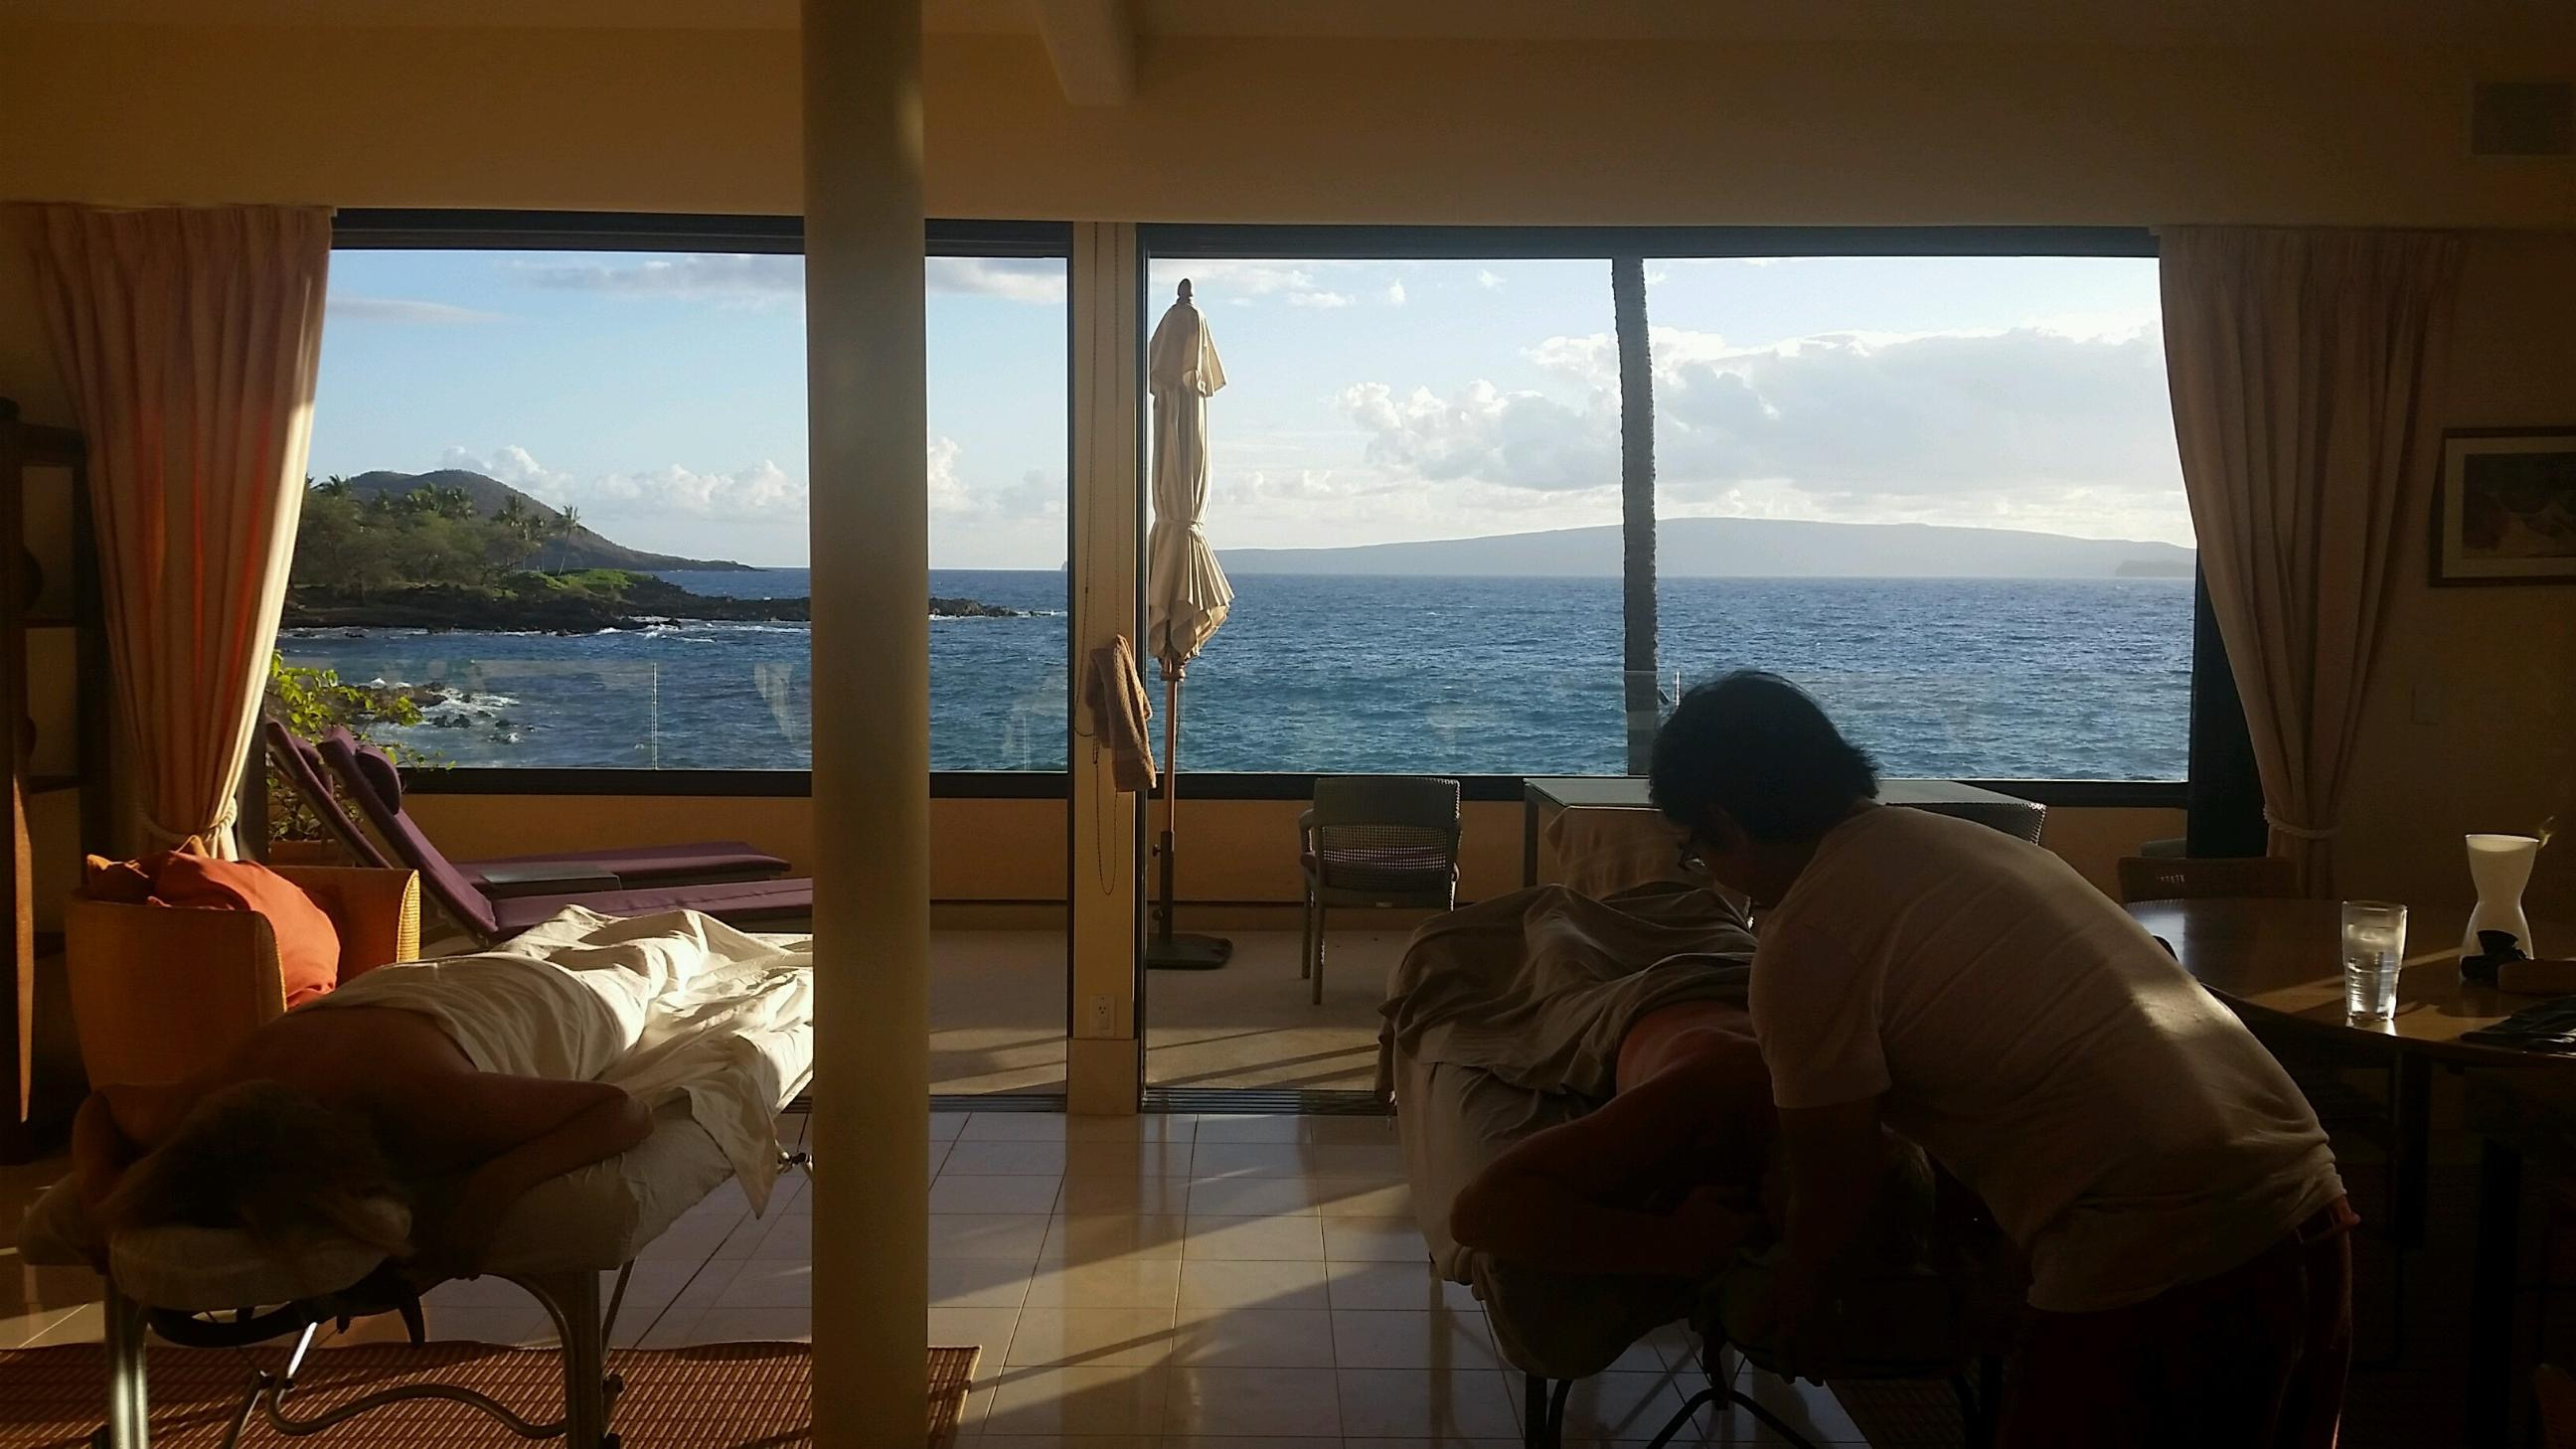 """One of my amazing massage """"office"""" views in Makena. That's me on the right. Picture taken with full permission from our awesome clients."""